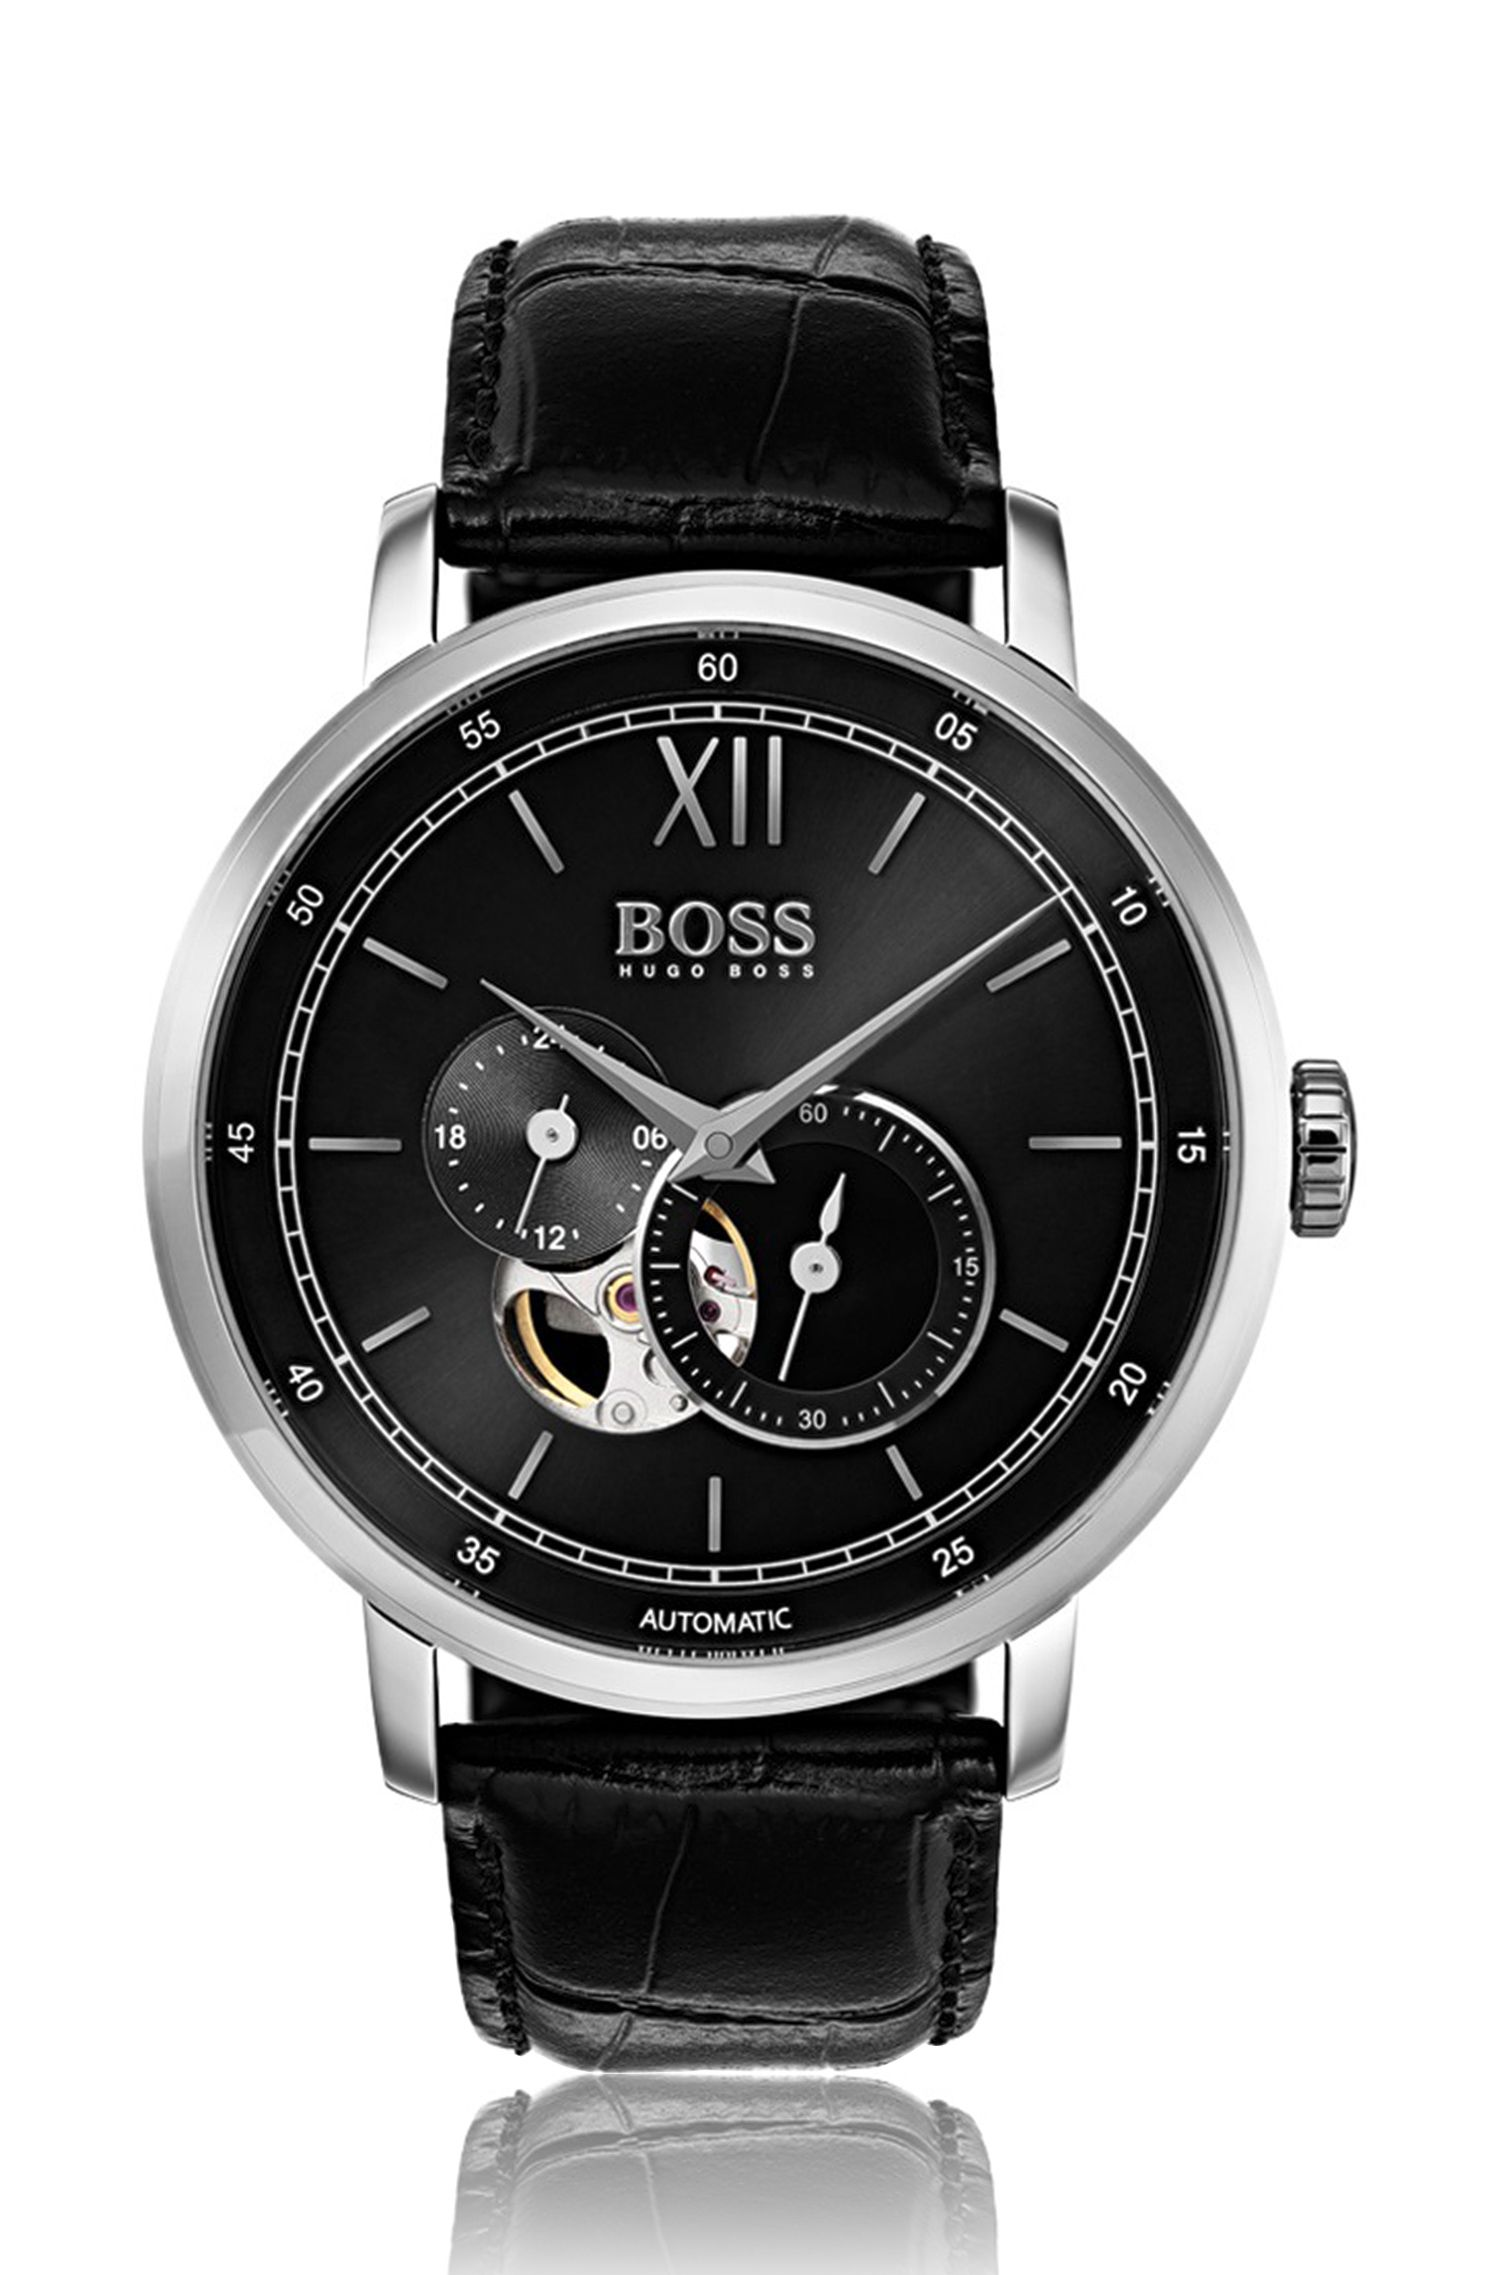 Multi-dial watch with visible mechanics and embossed strap